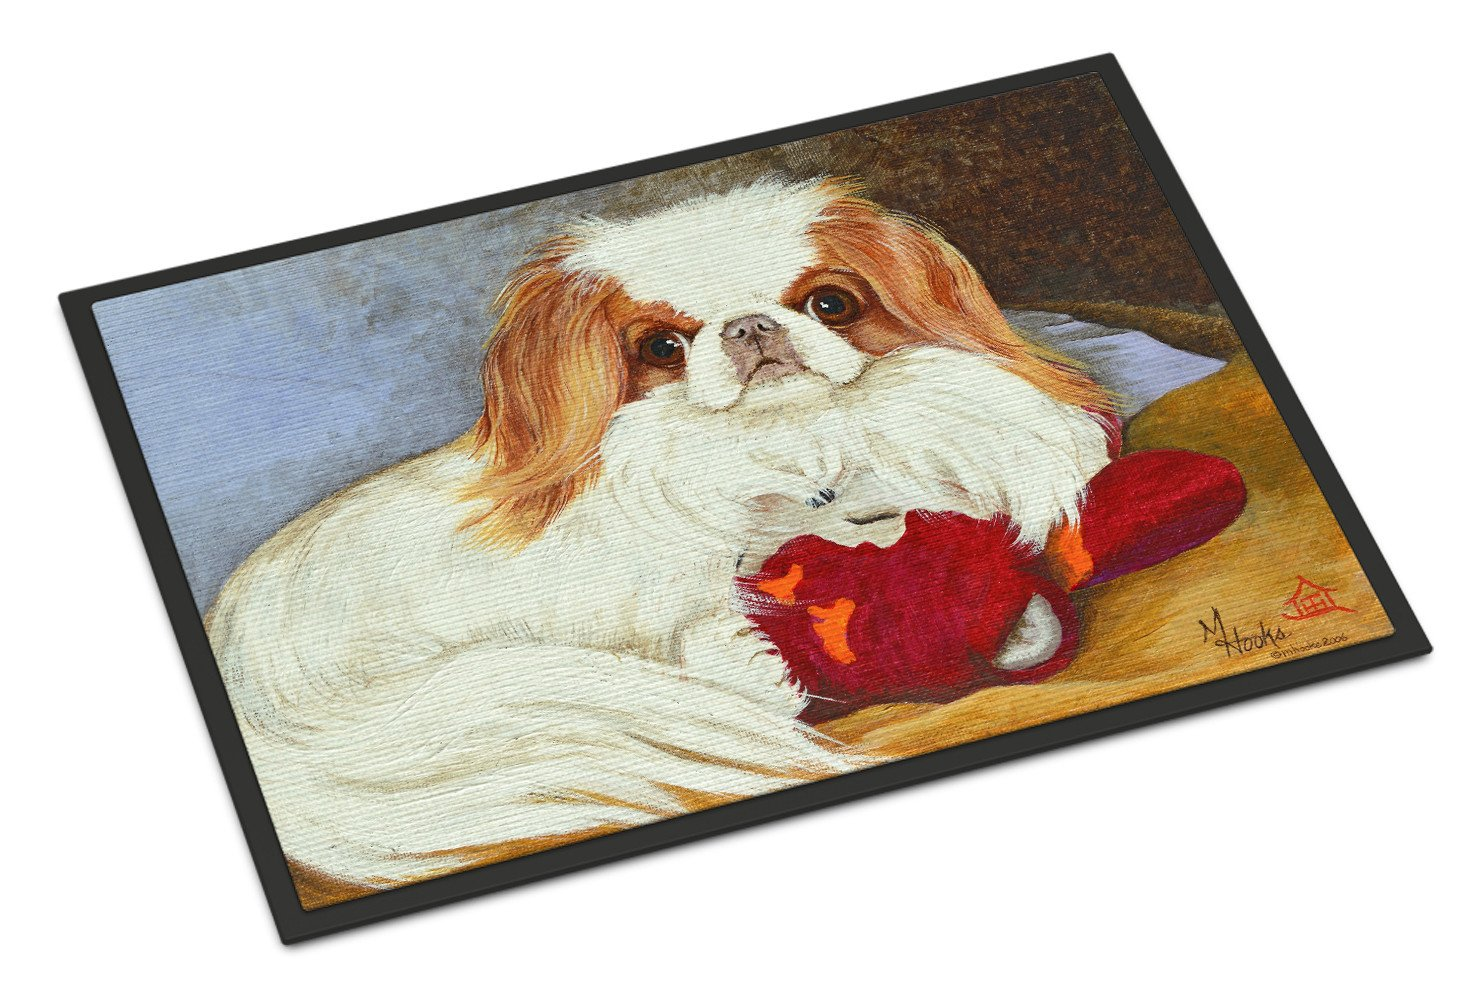 Japanese Chin Pink Gorilla Indoor or Outdoor Mat 18x27 MH1049MAT - the-store.com